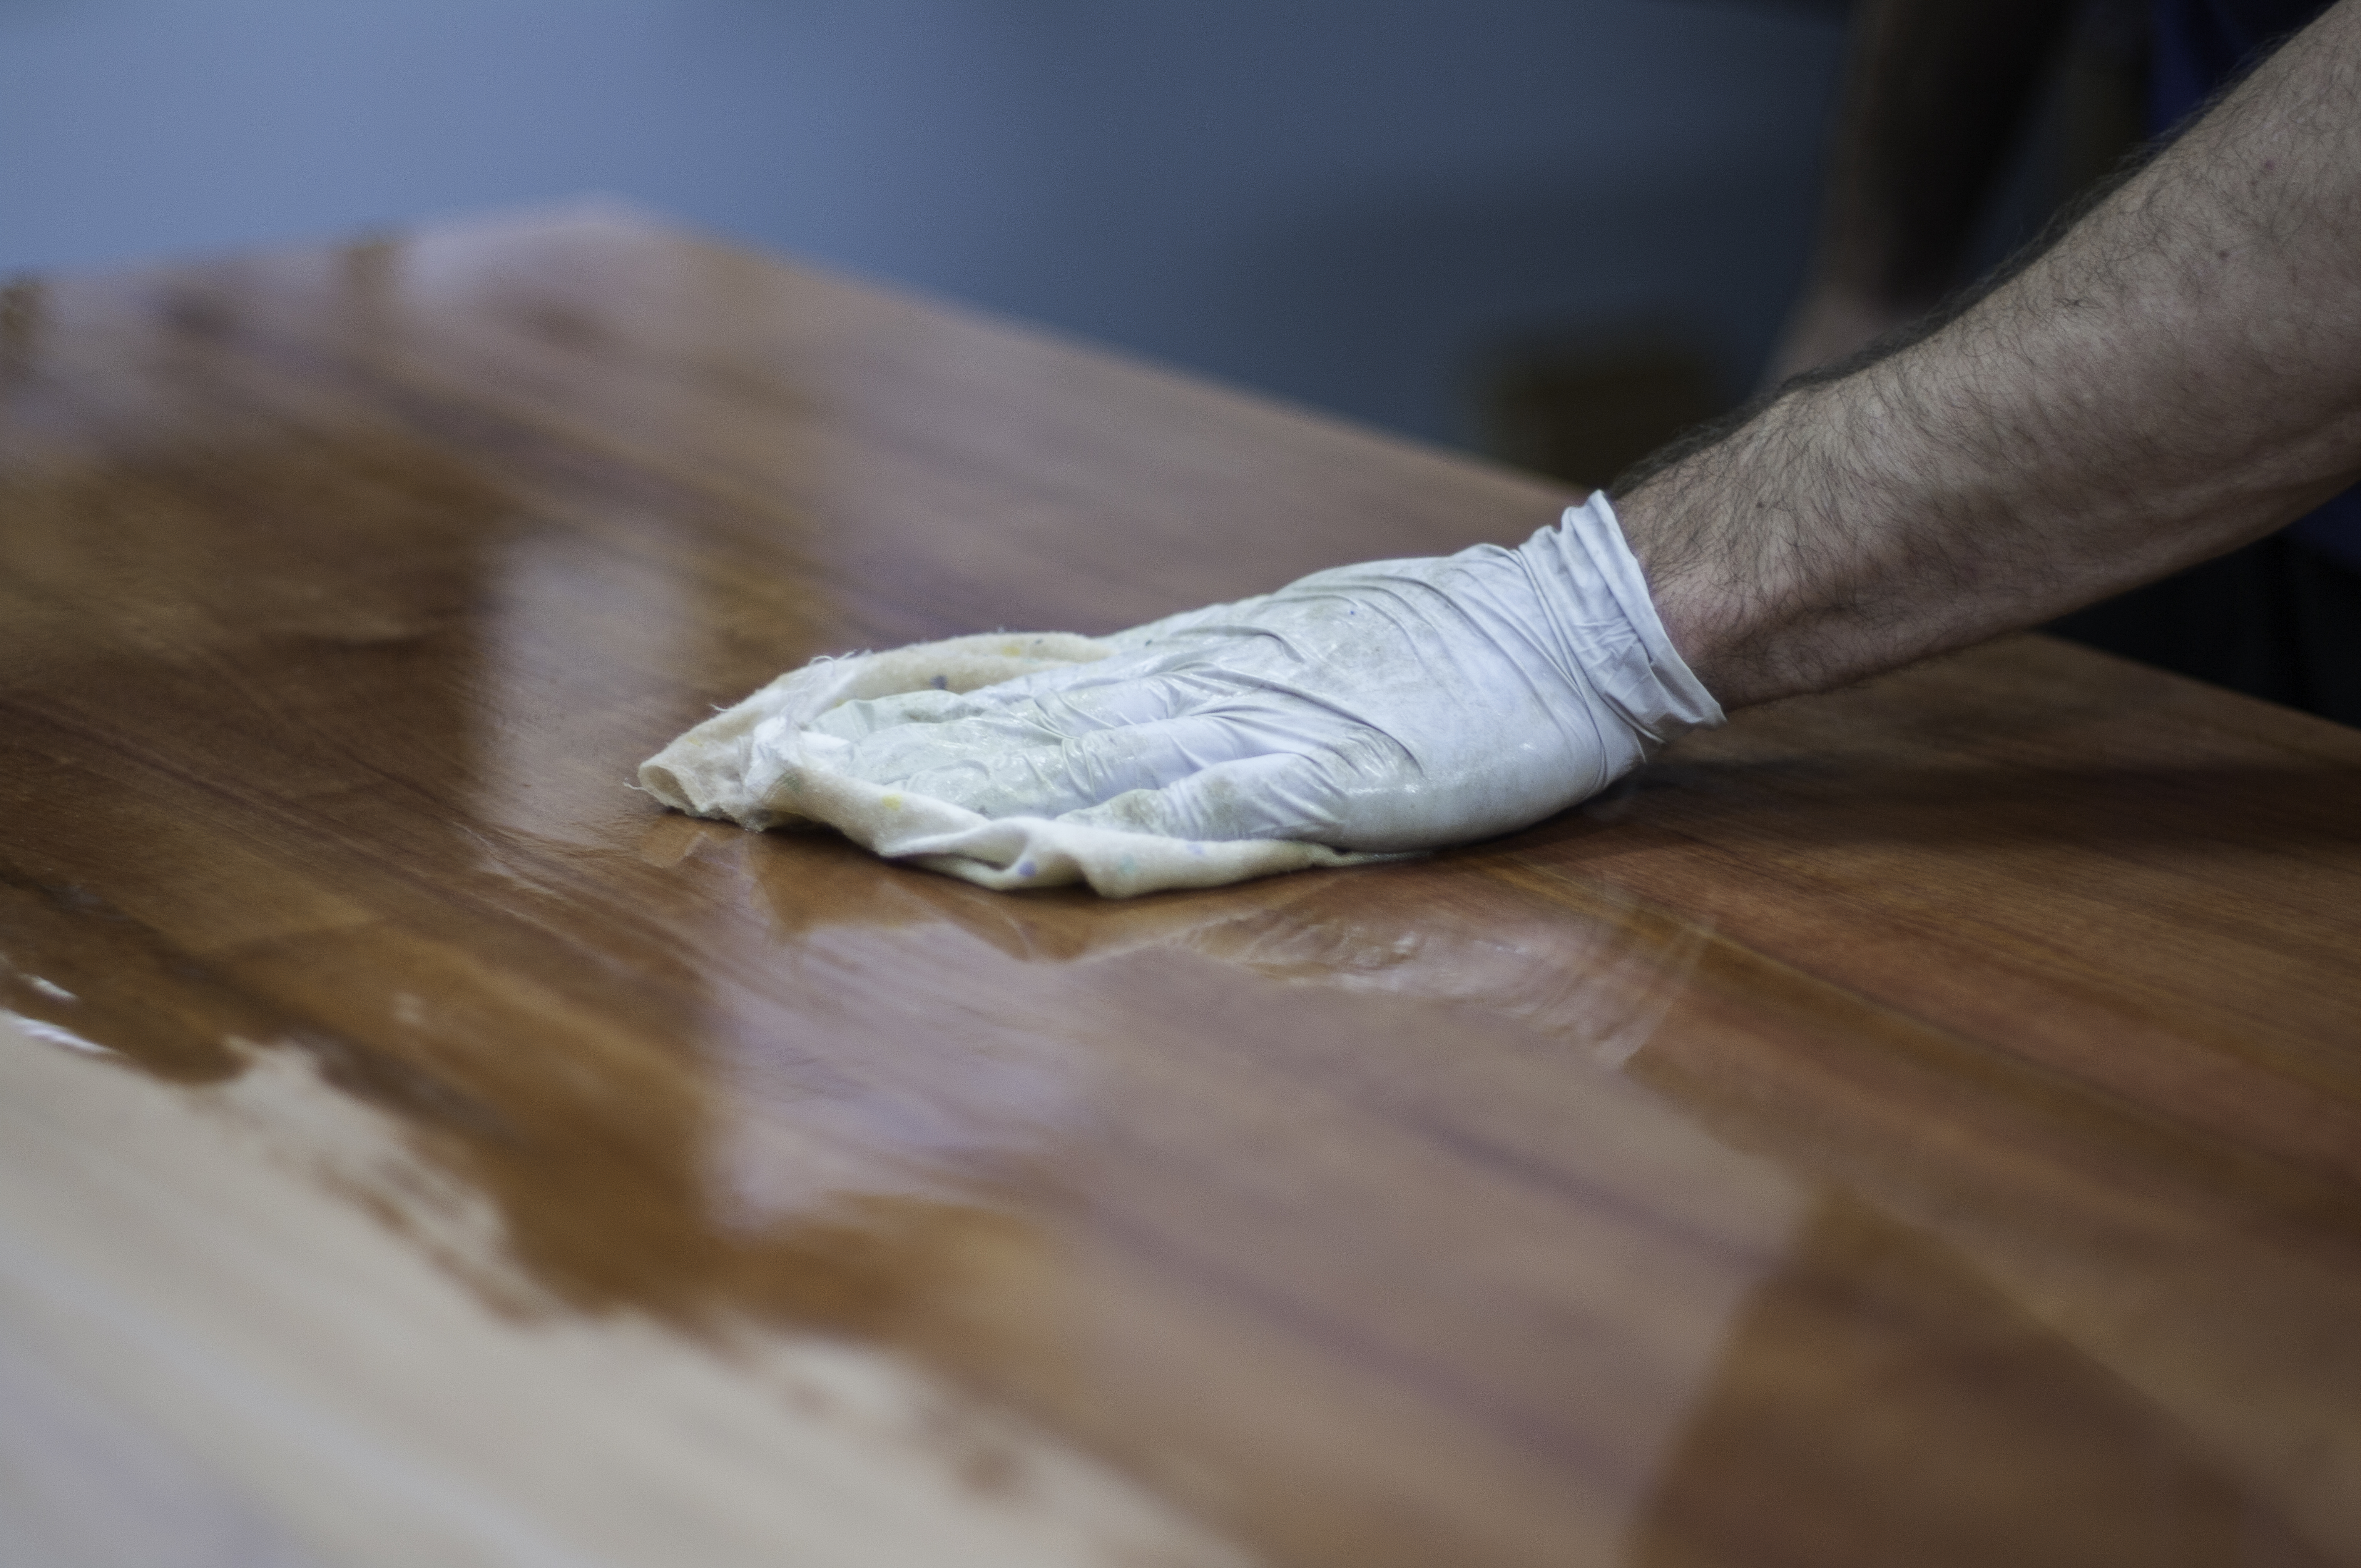 Finshing a timber table top by hand with oil or wax. French polishing wooden furniture with a rag to achieve a shiny, flawless surface. Taken in a woodworking workshop with a professional wood finisher. Fine woodwork.